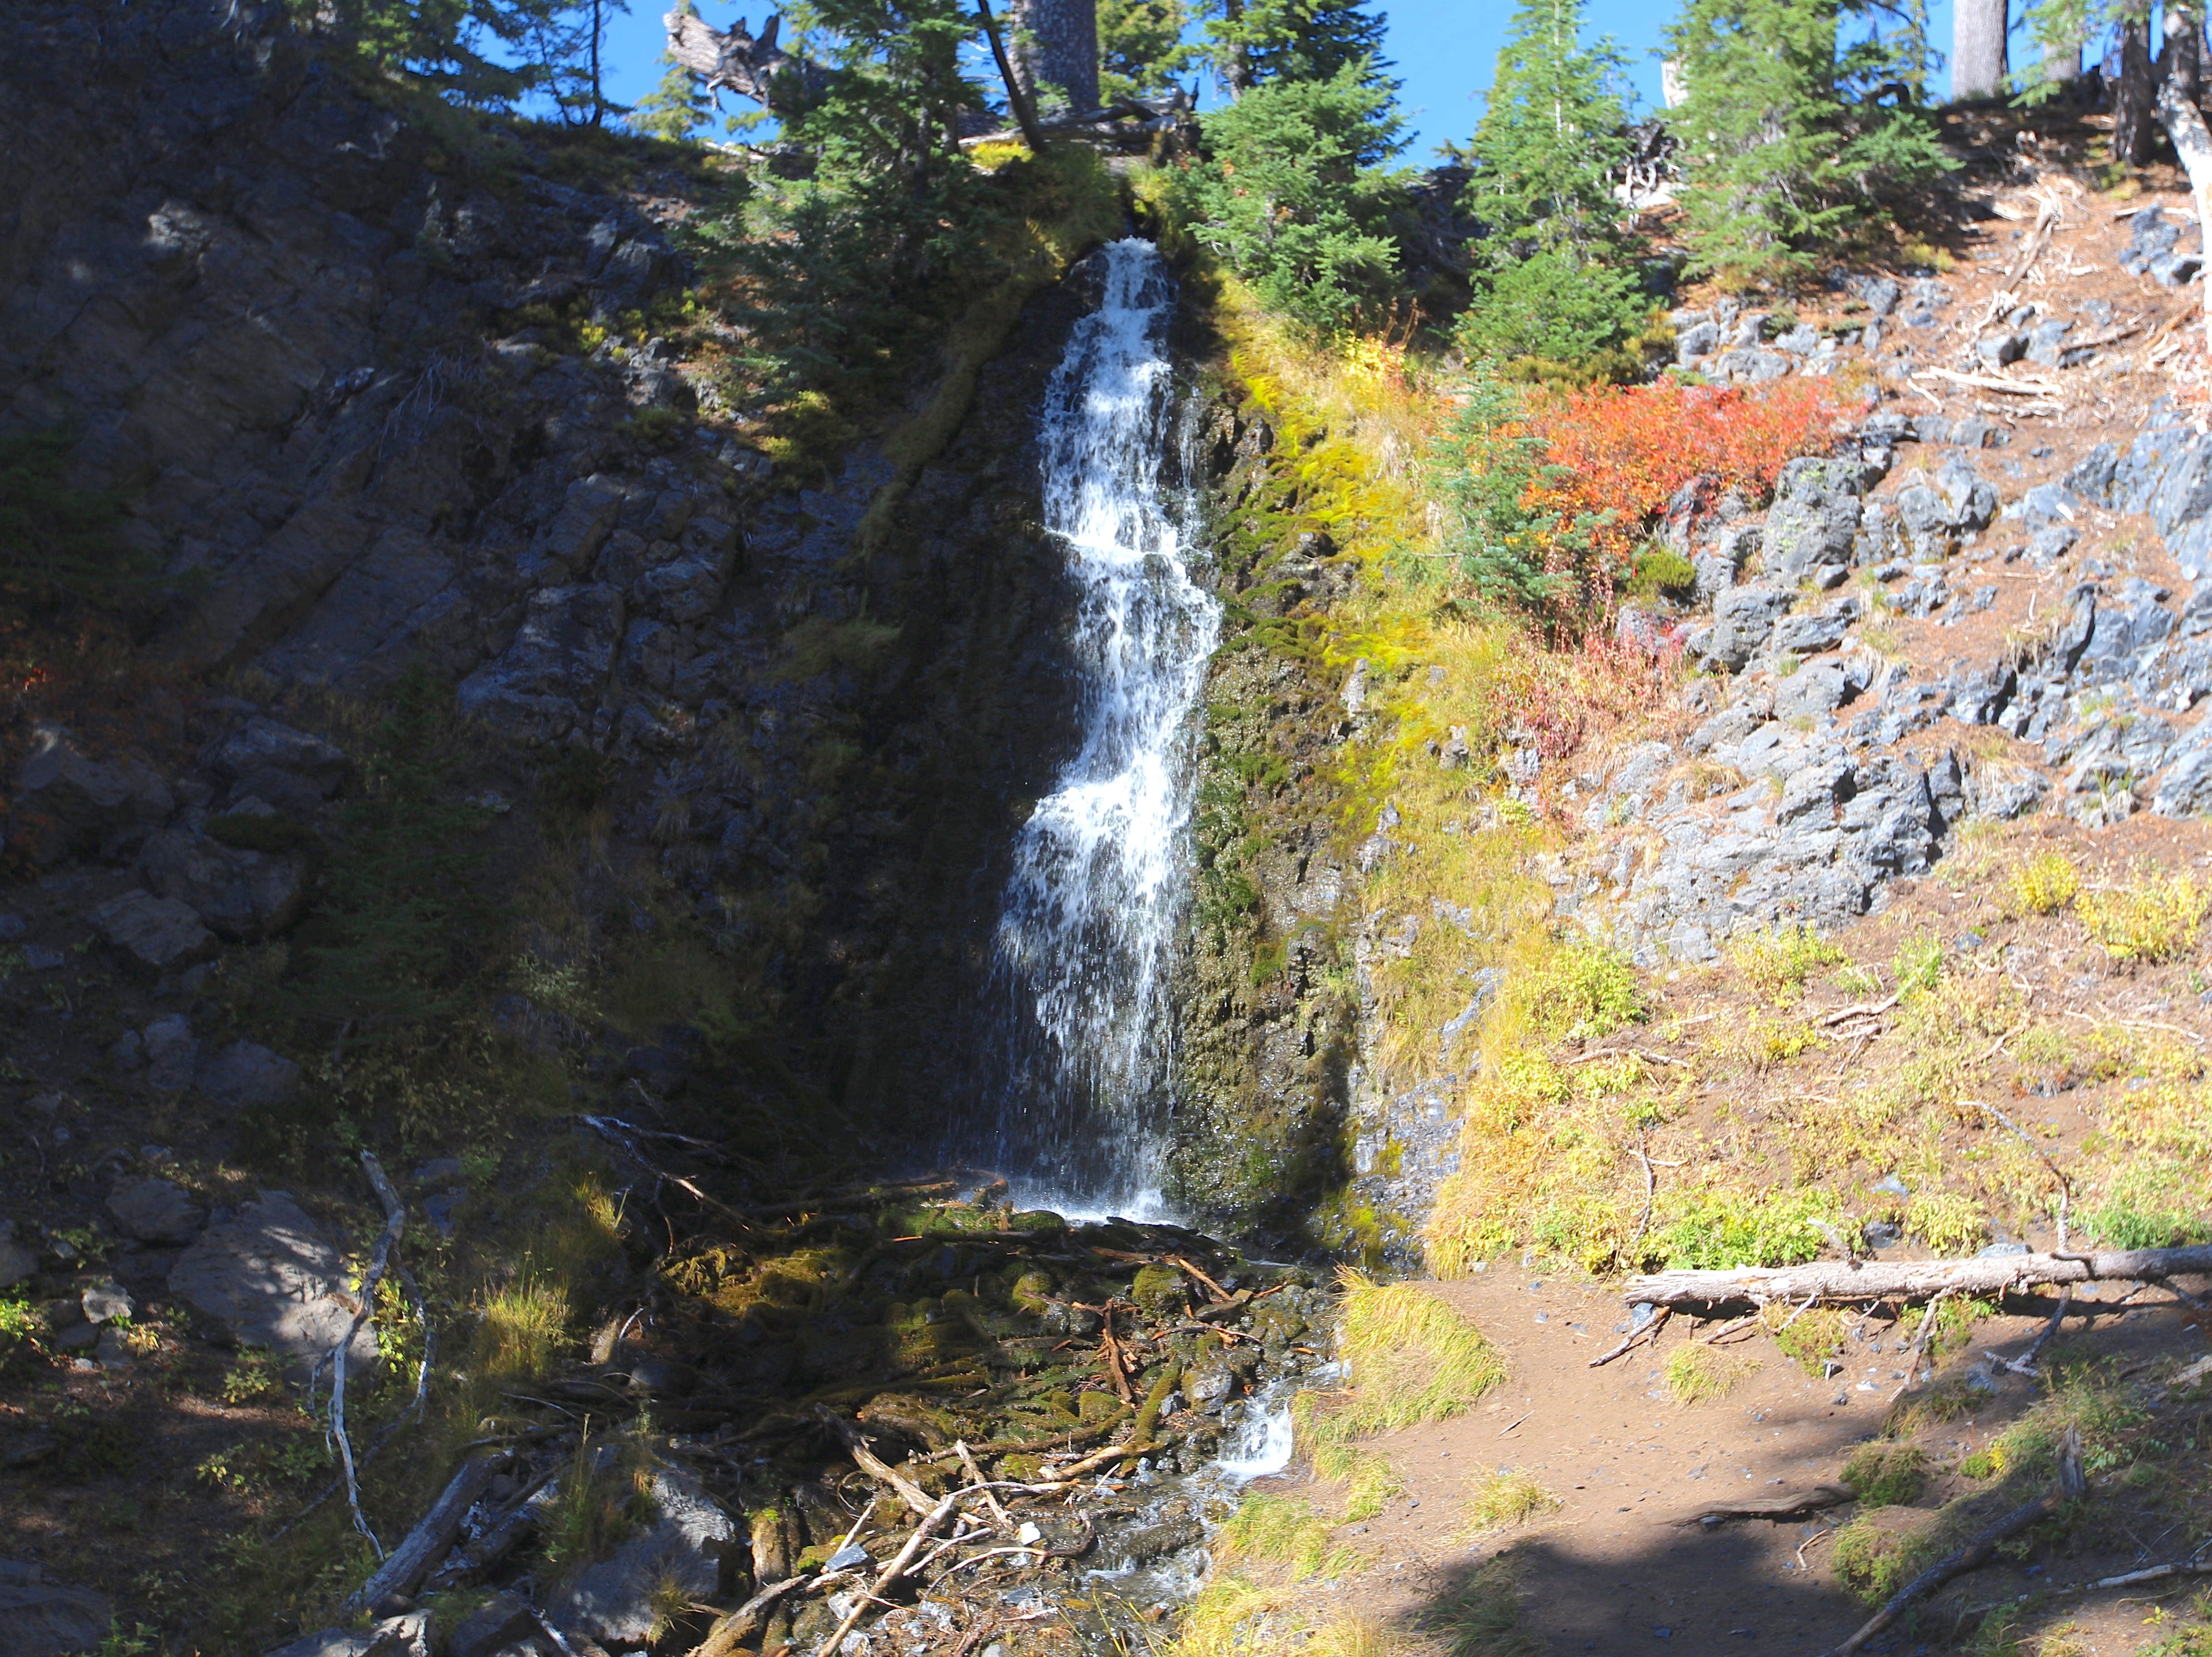 Obsidian Falls in the Obsidian Limited Entry Area.